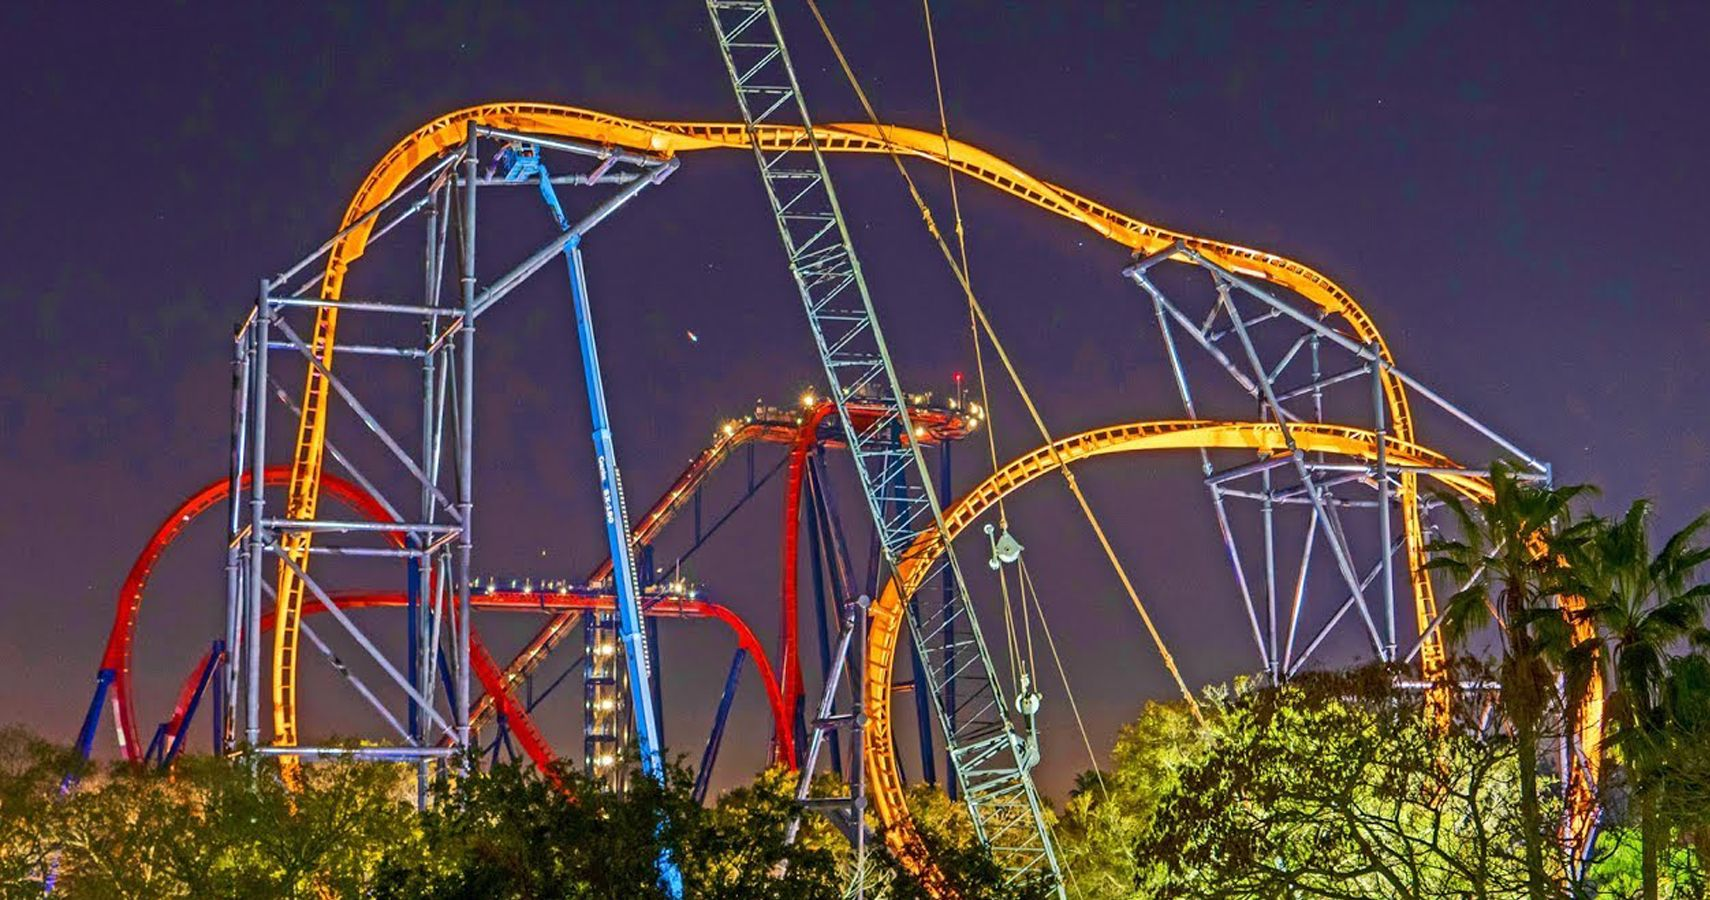 The Fastest Roller Coasters At Busch Gardens Ranked Thetravel